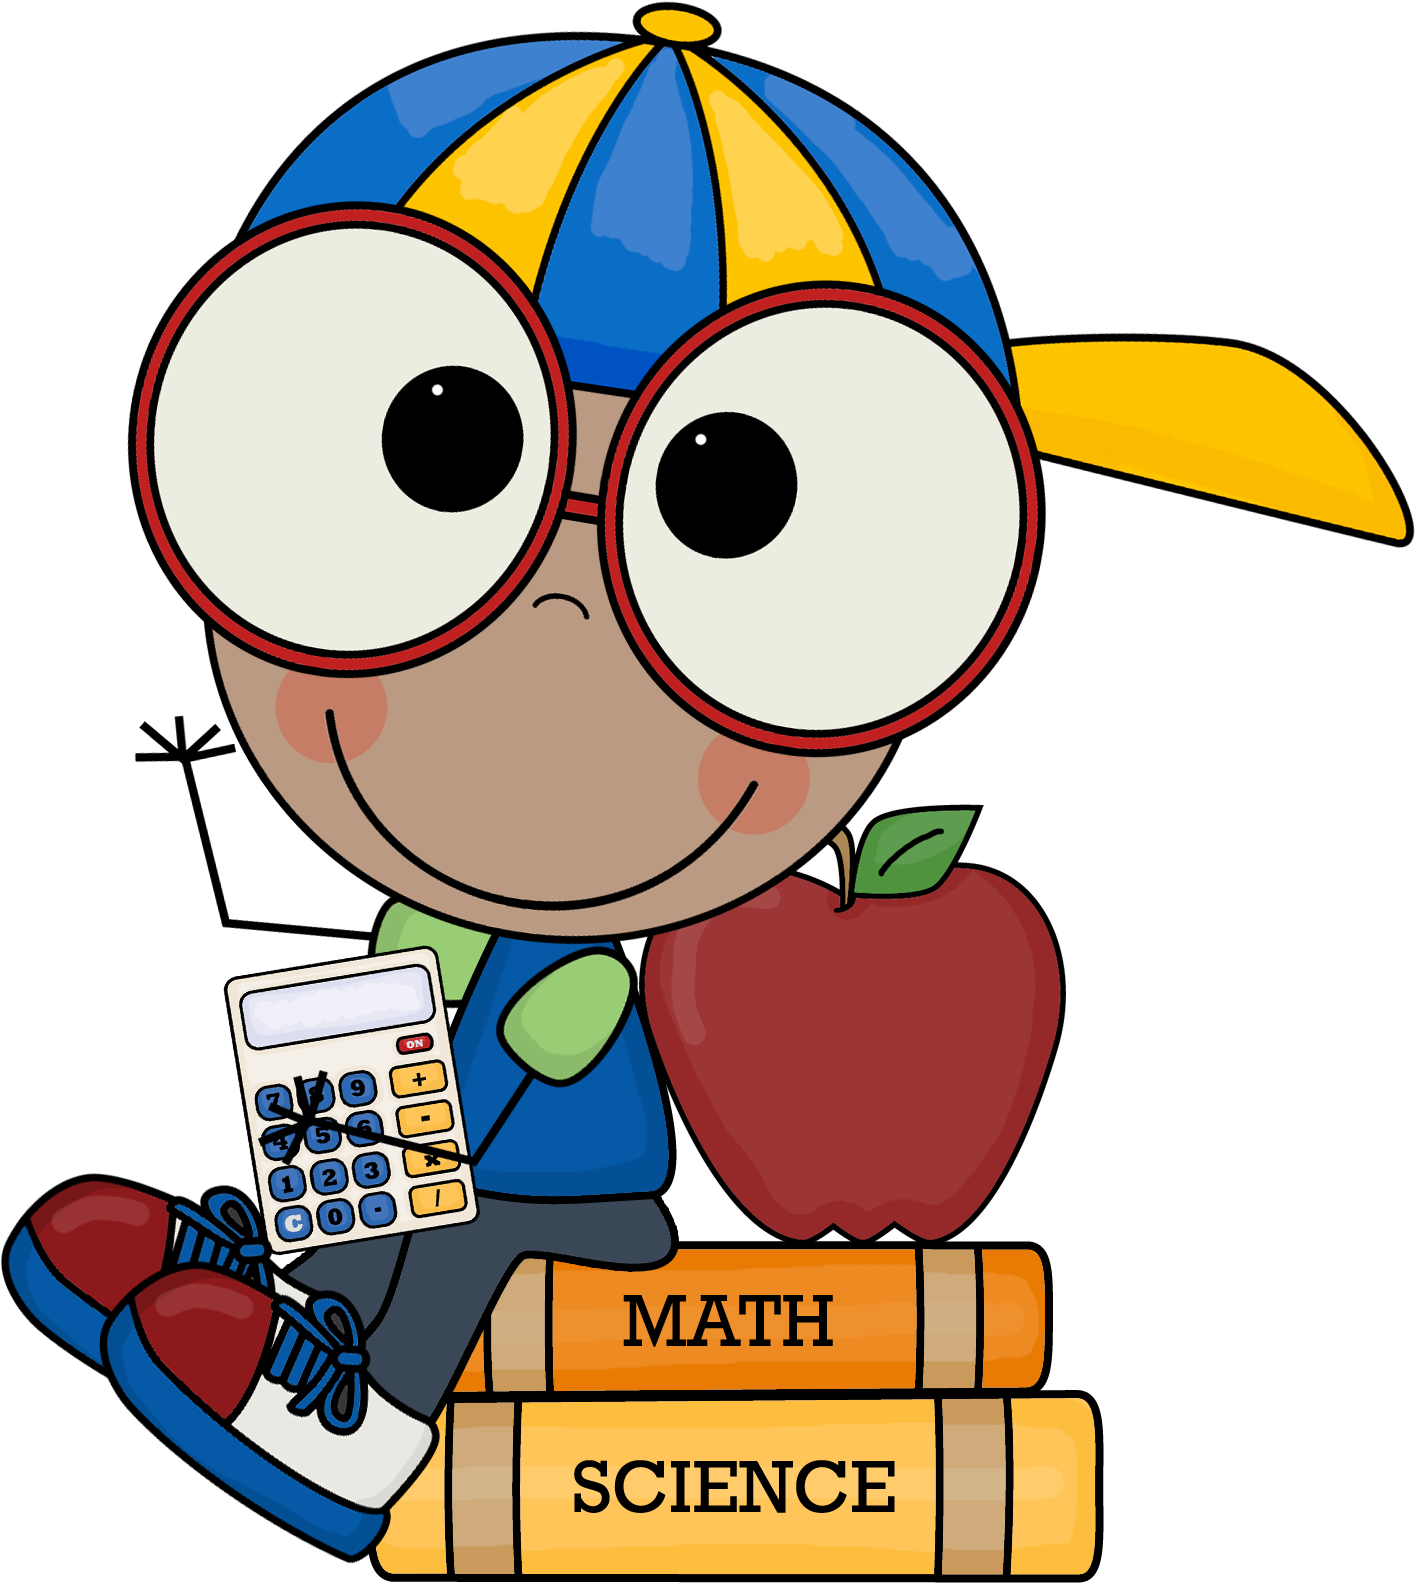 Homework clip art png. Collection of clipart